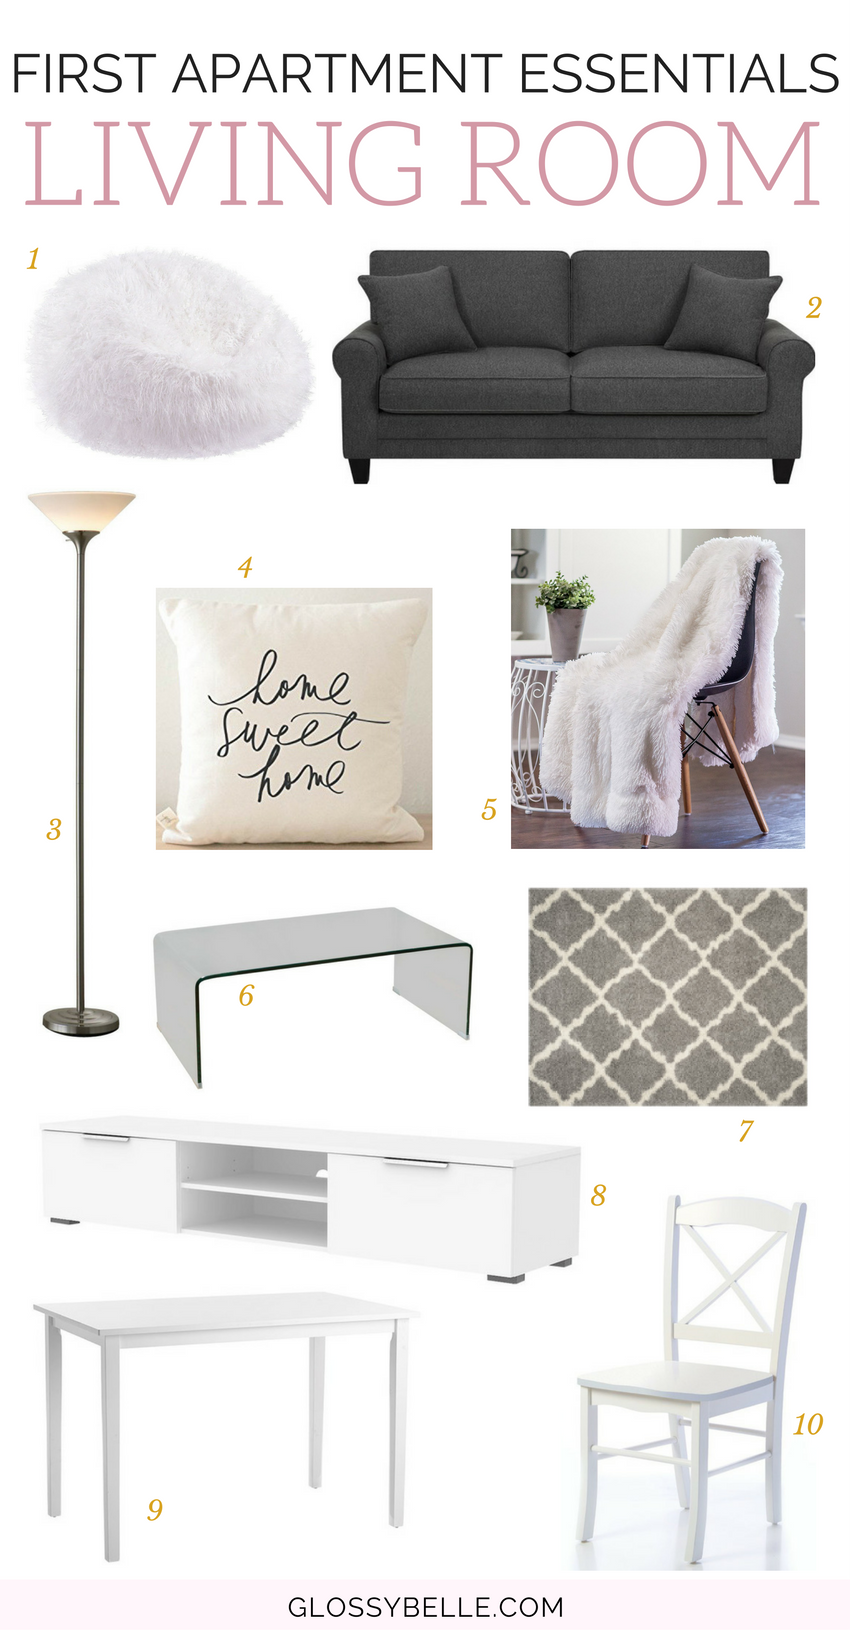 If you're about to move out into your first apartment, here are the most important apartment essentials you'll need to be ready to move out on your own.   adulting   move out for the first time   moving out   independence   college essentials   college dorm   room essentials   home decor   living room essentials #apartment #furniture #furnitureideas #adulting #livingroomideas #livingroomdecor #livingroomfurniture #livingroom